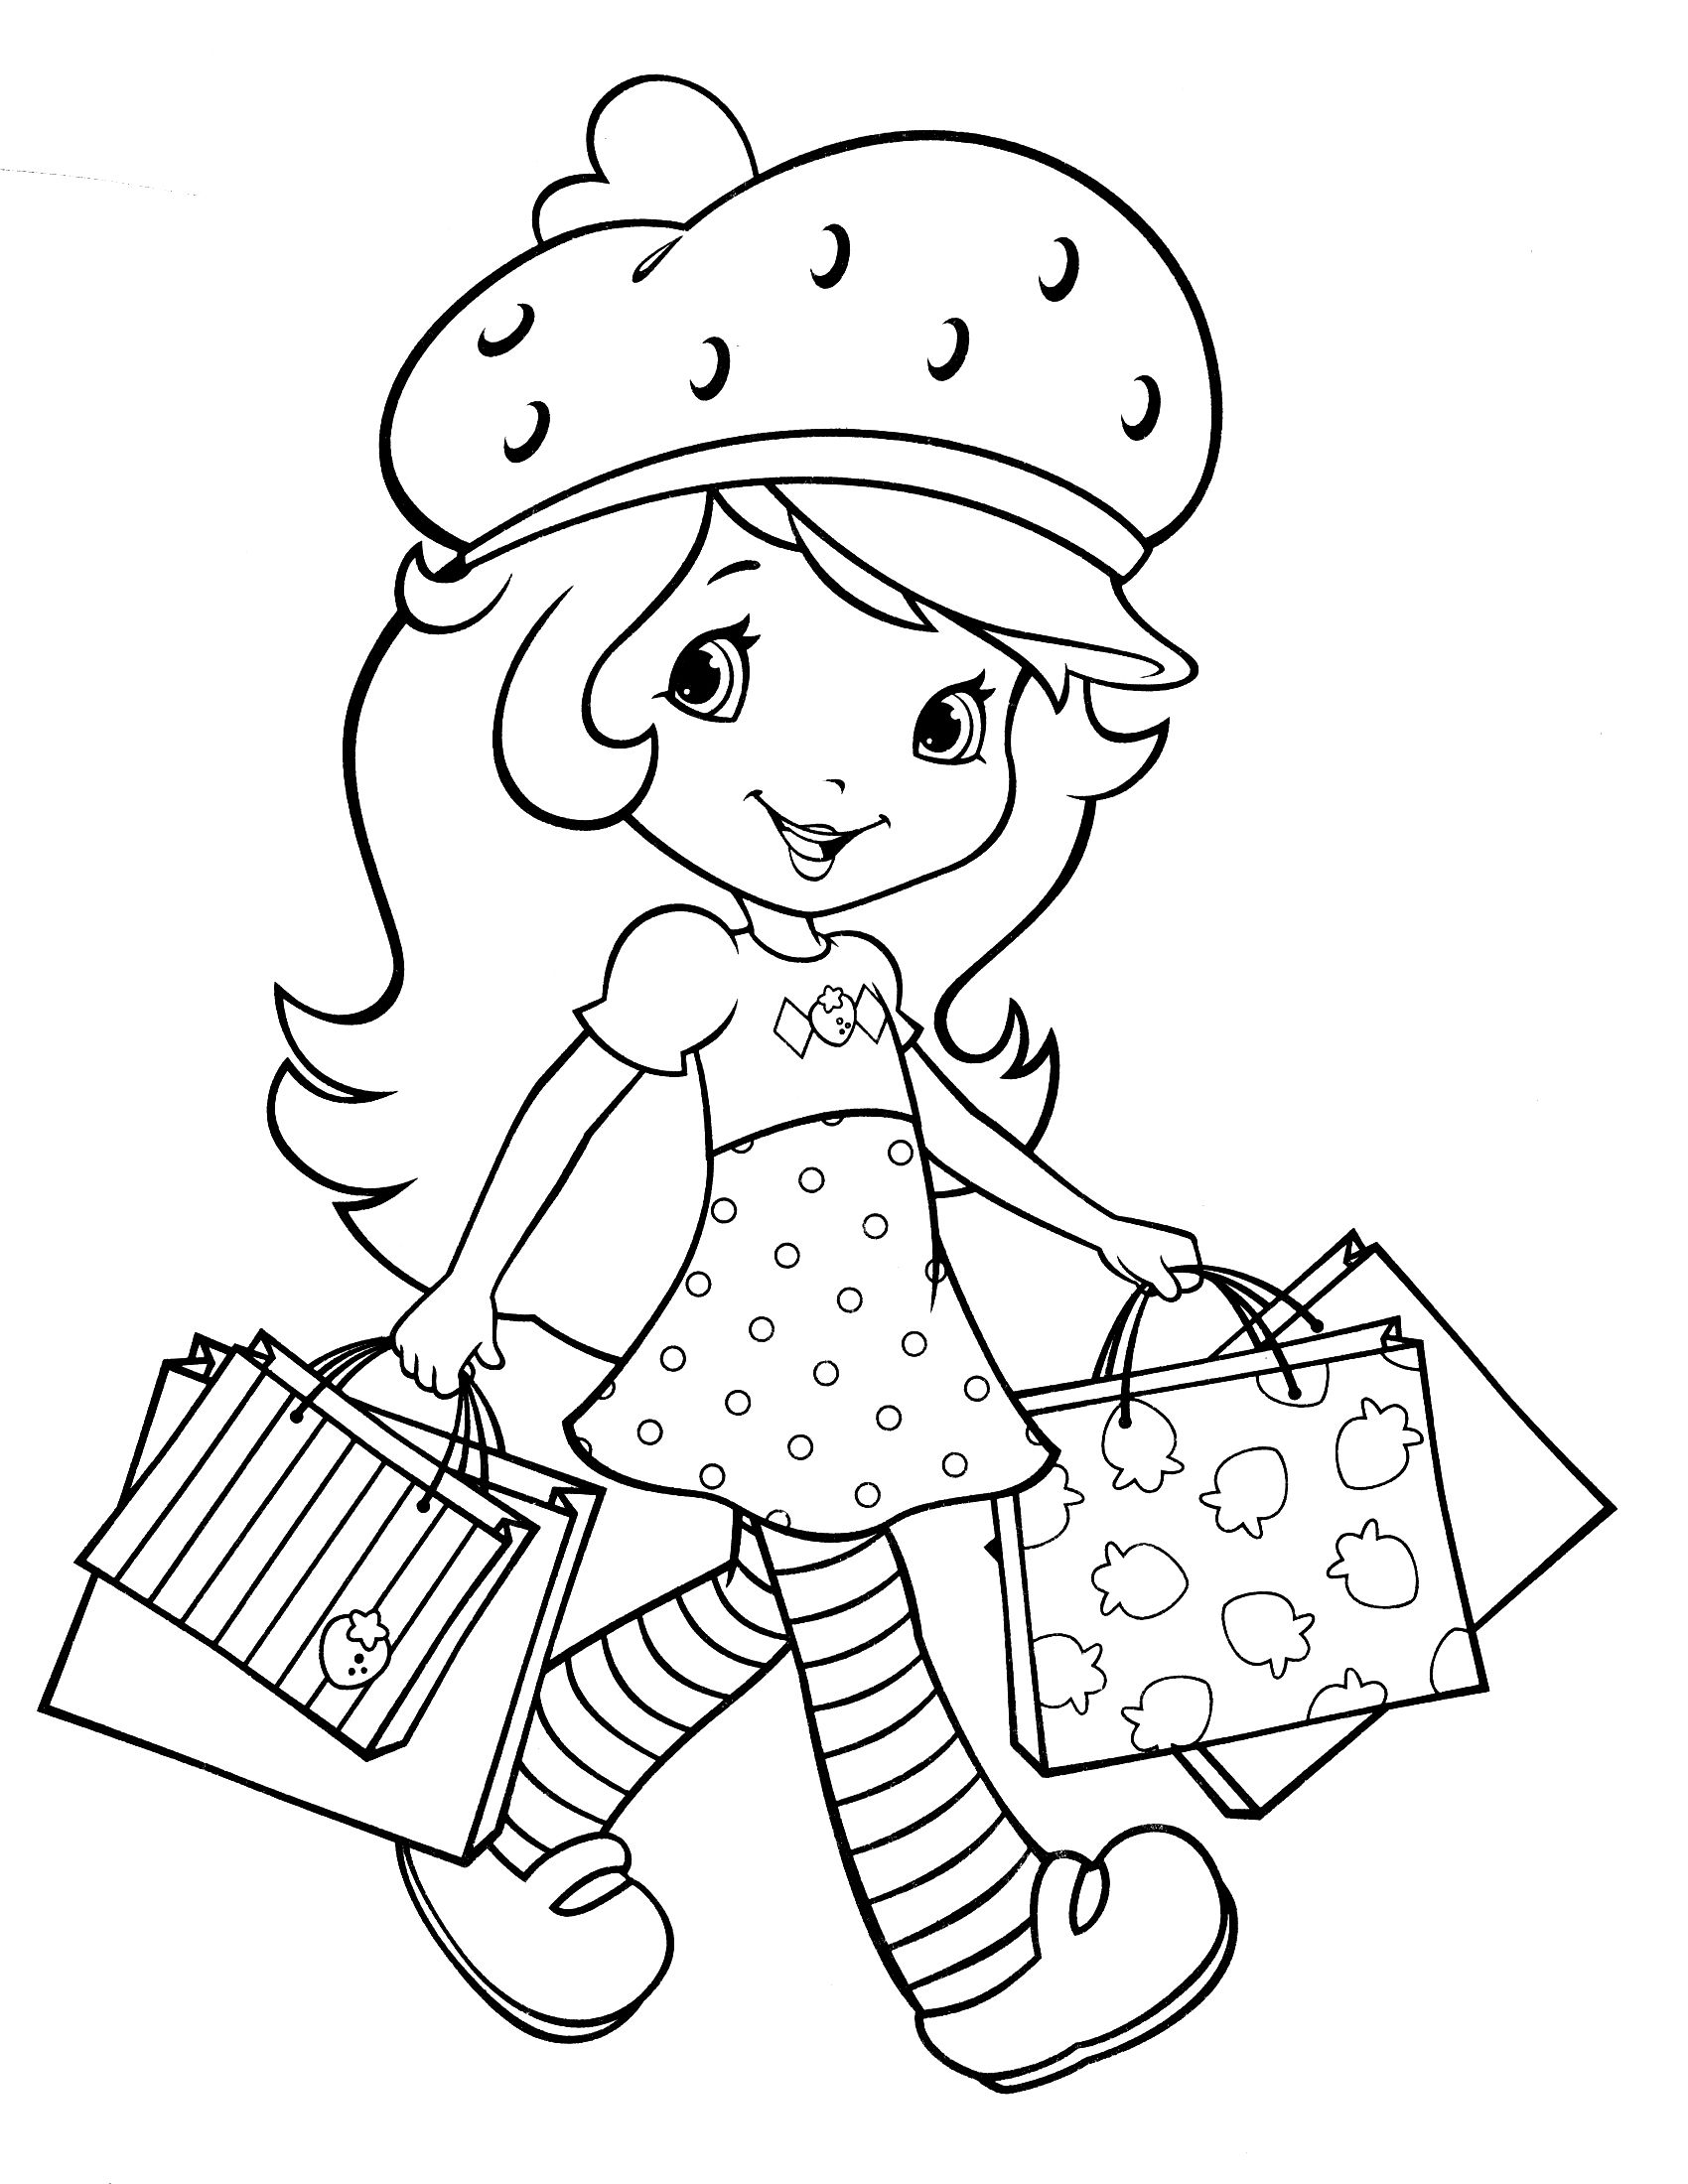 christmas strawberry shortcake coloring pages - photo#36